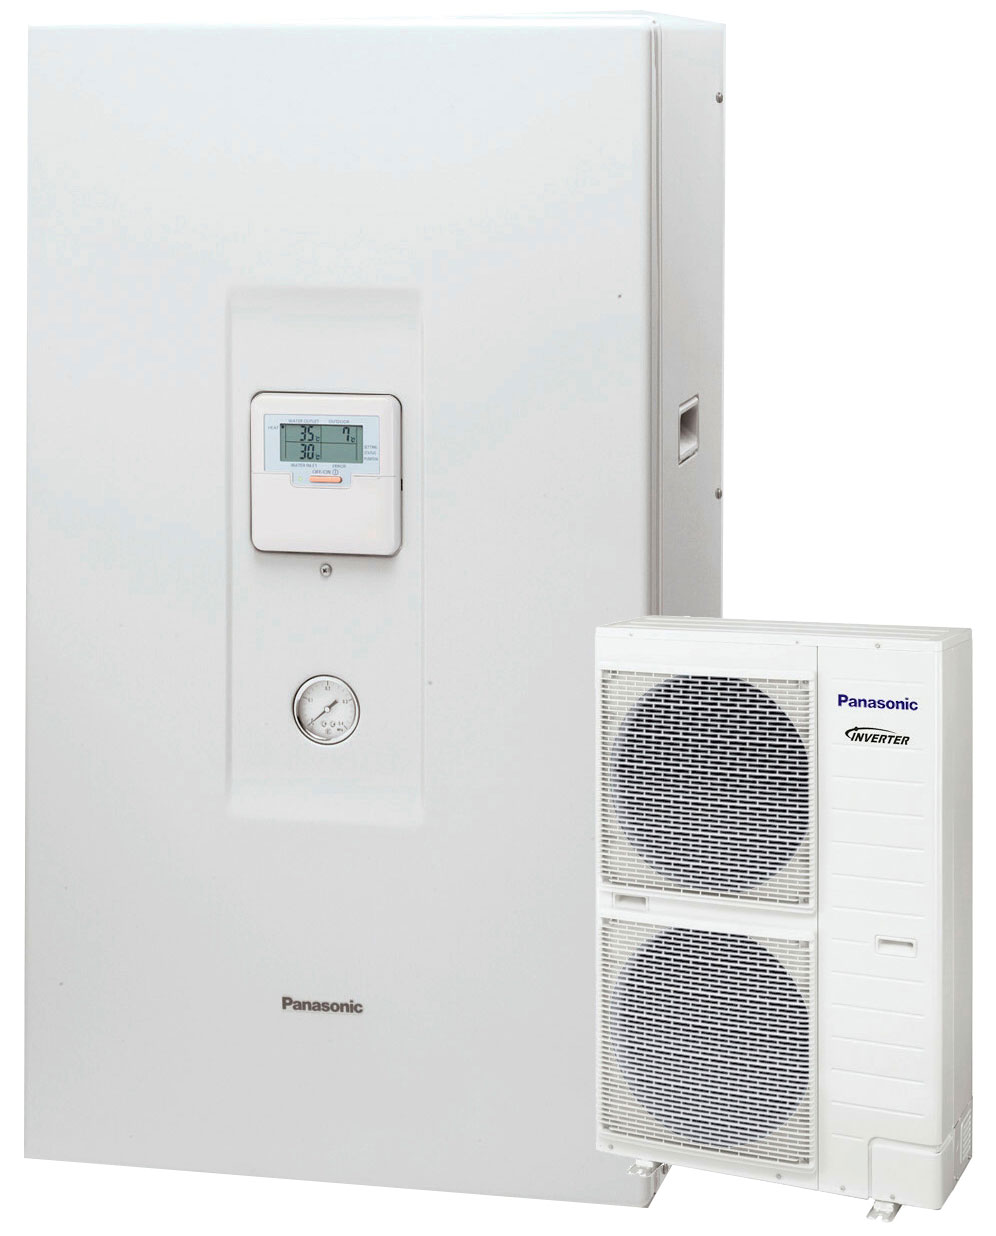 Panasonic Aquarea 9 kW